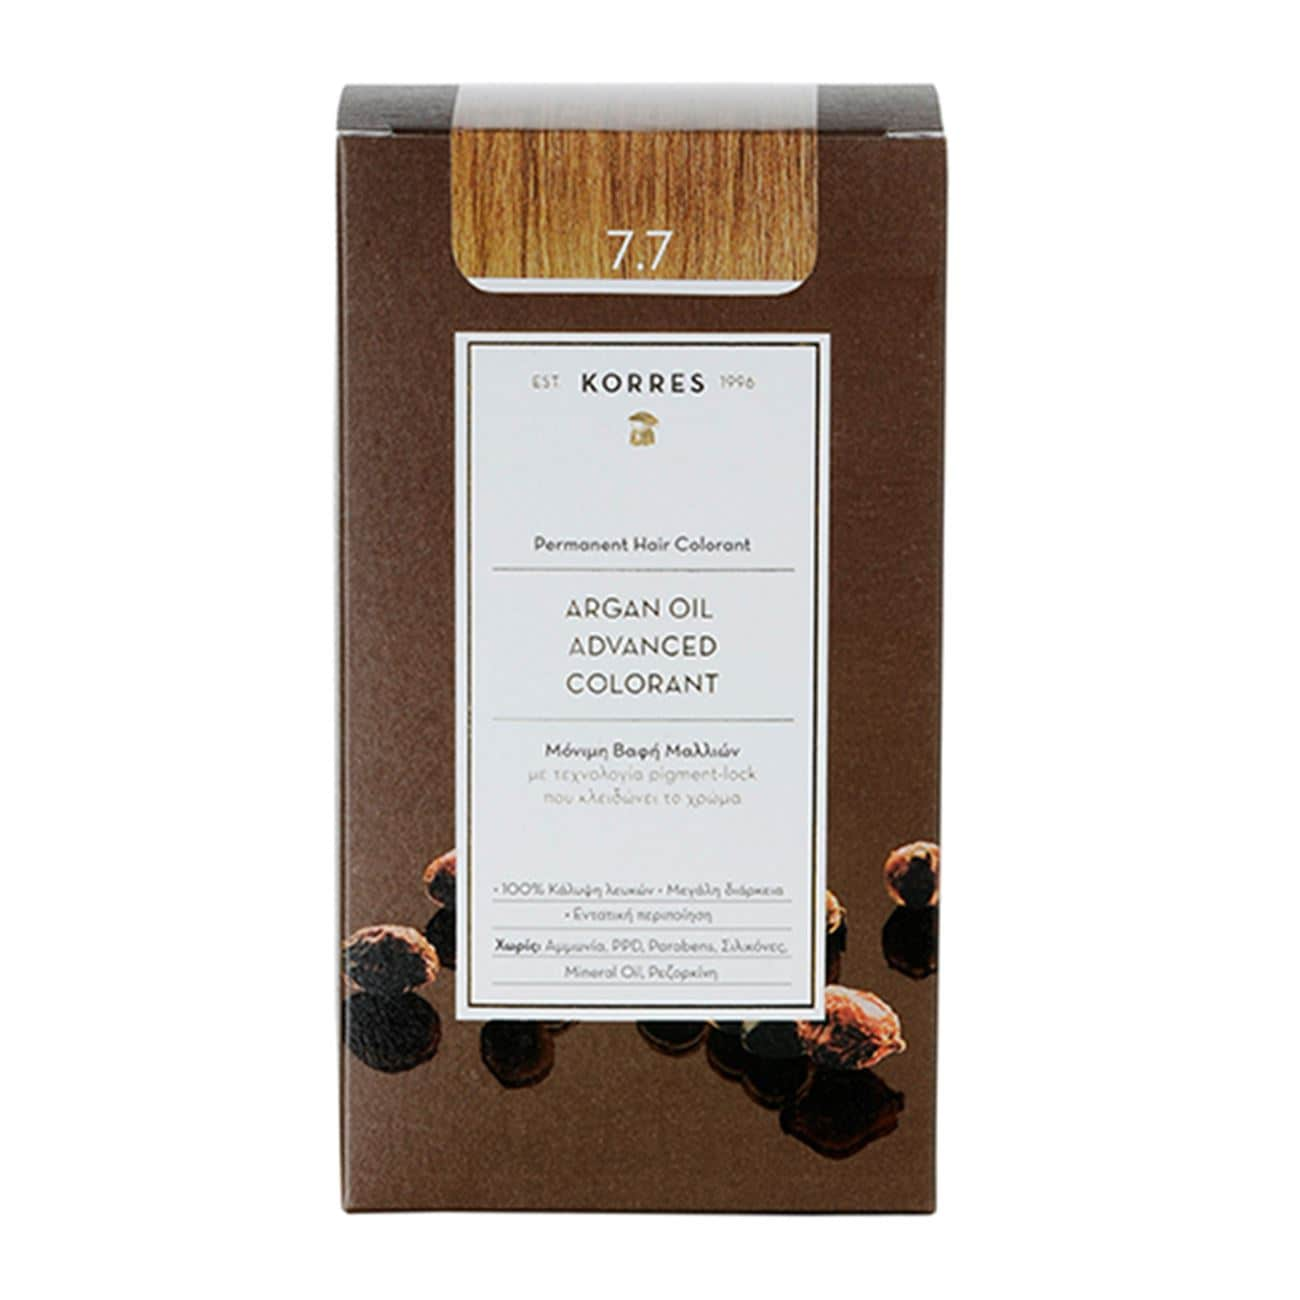 Argan Oil Advanced Colorant 7.7 Μόκα